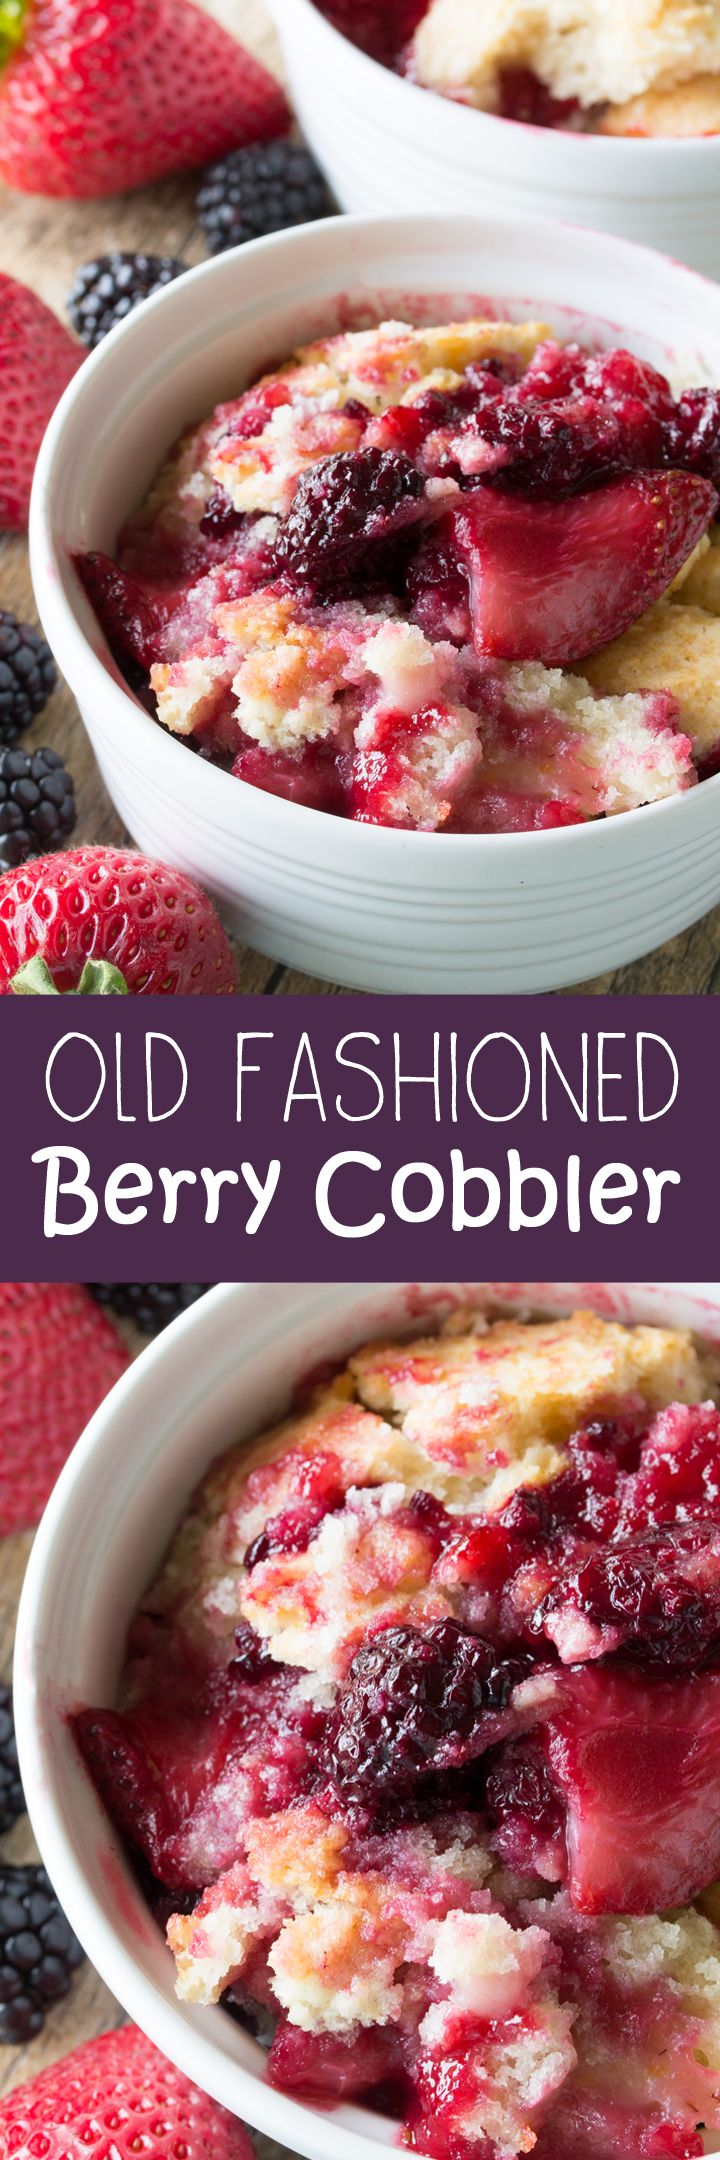 Old fashioned cobbler, made from scratch, is easier to make than you might think. 10 minutes of prep and you'll have the best cobbler of your life!